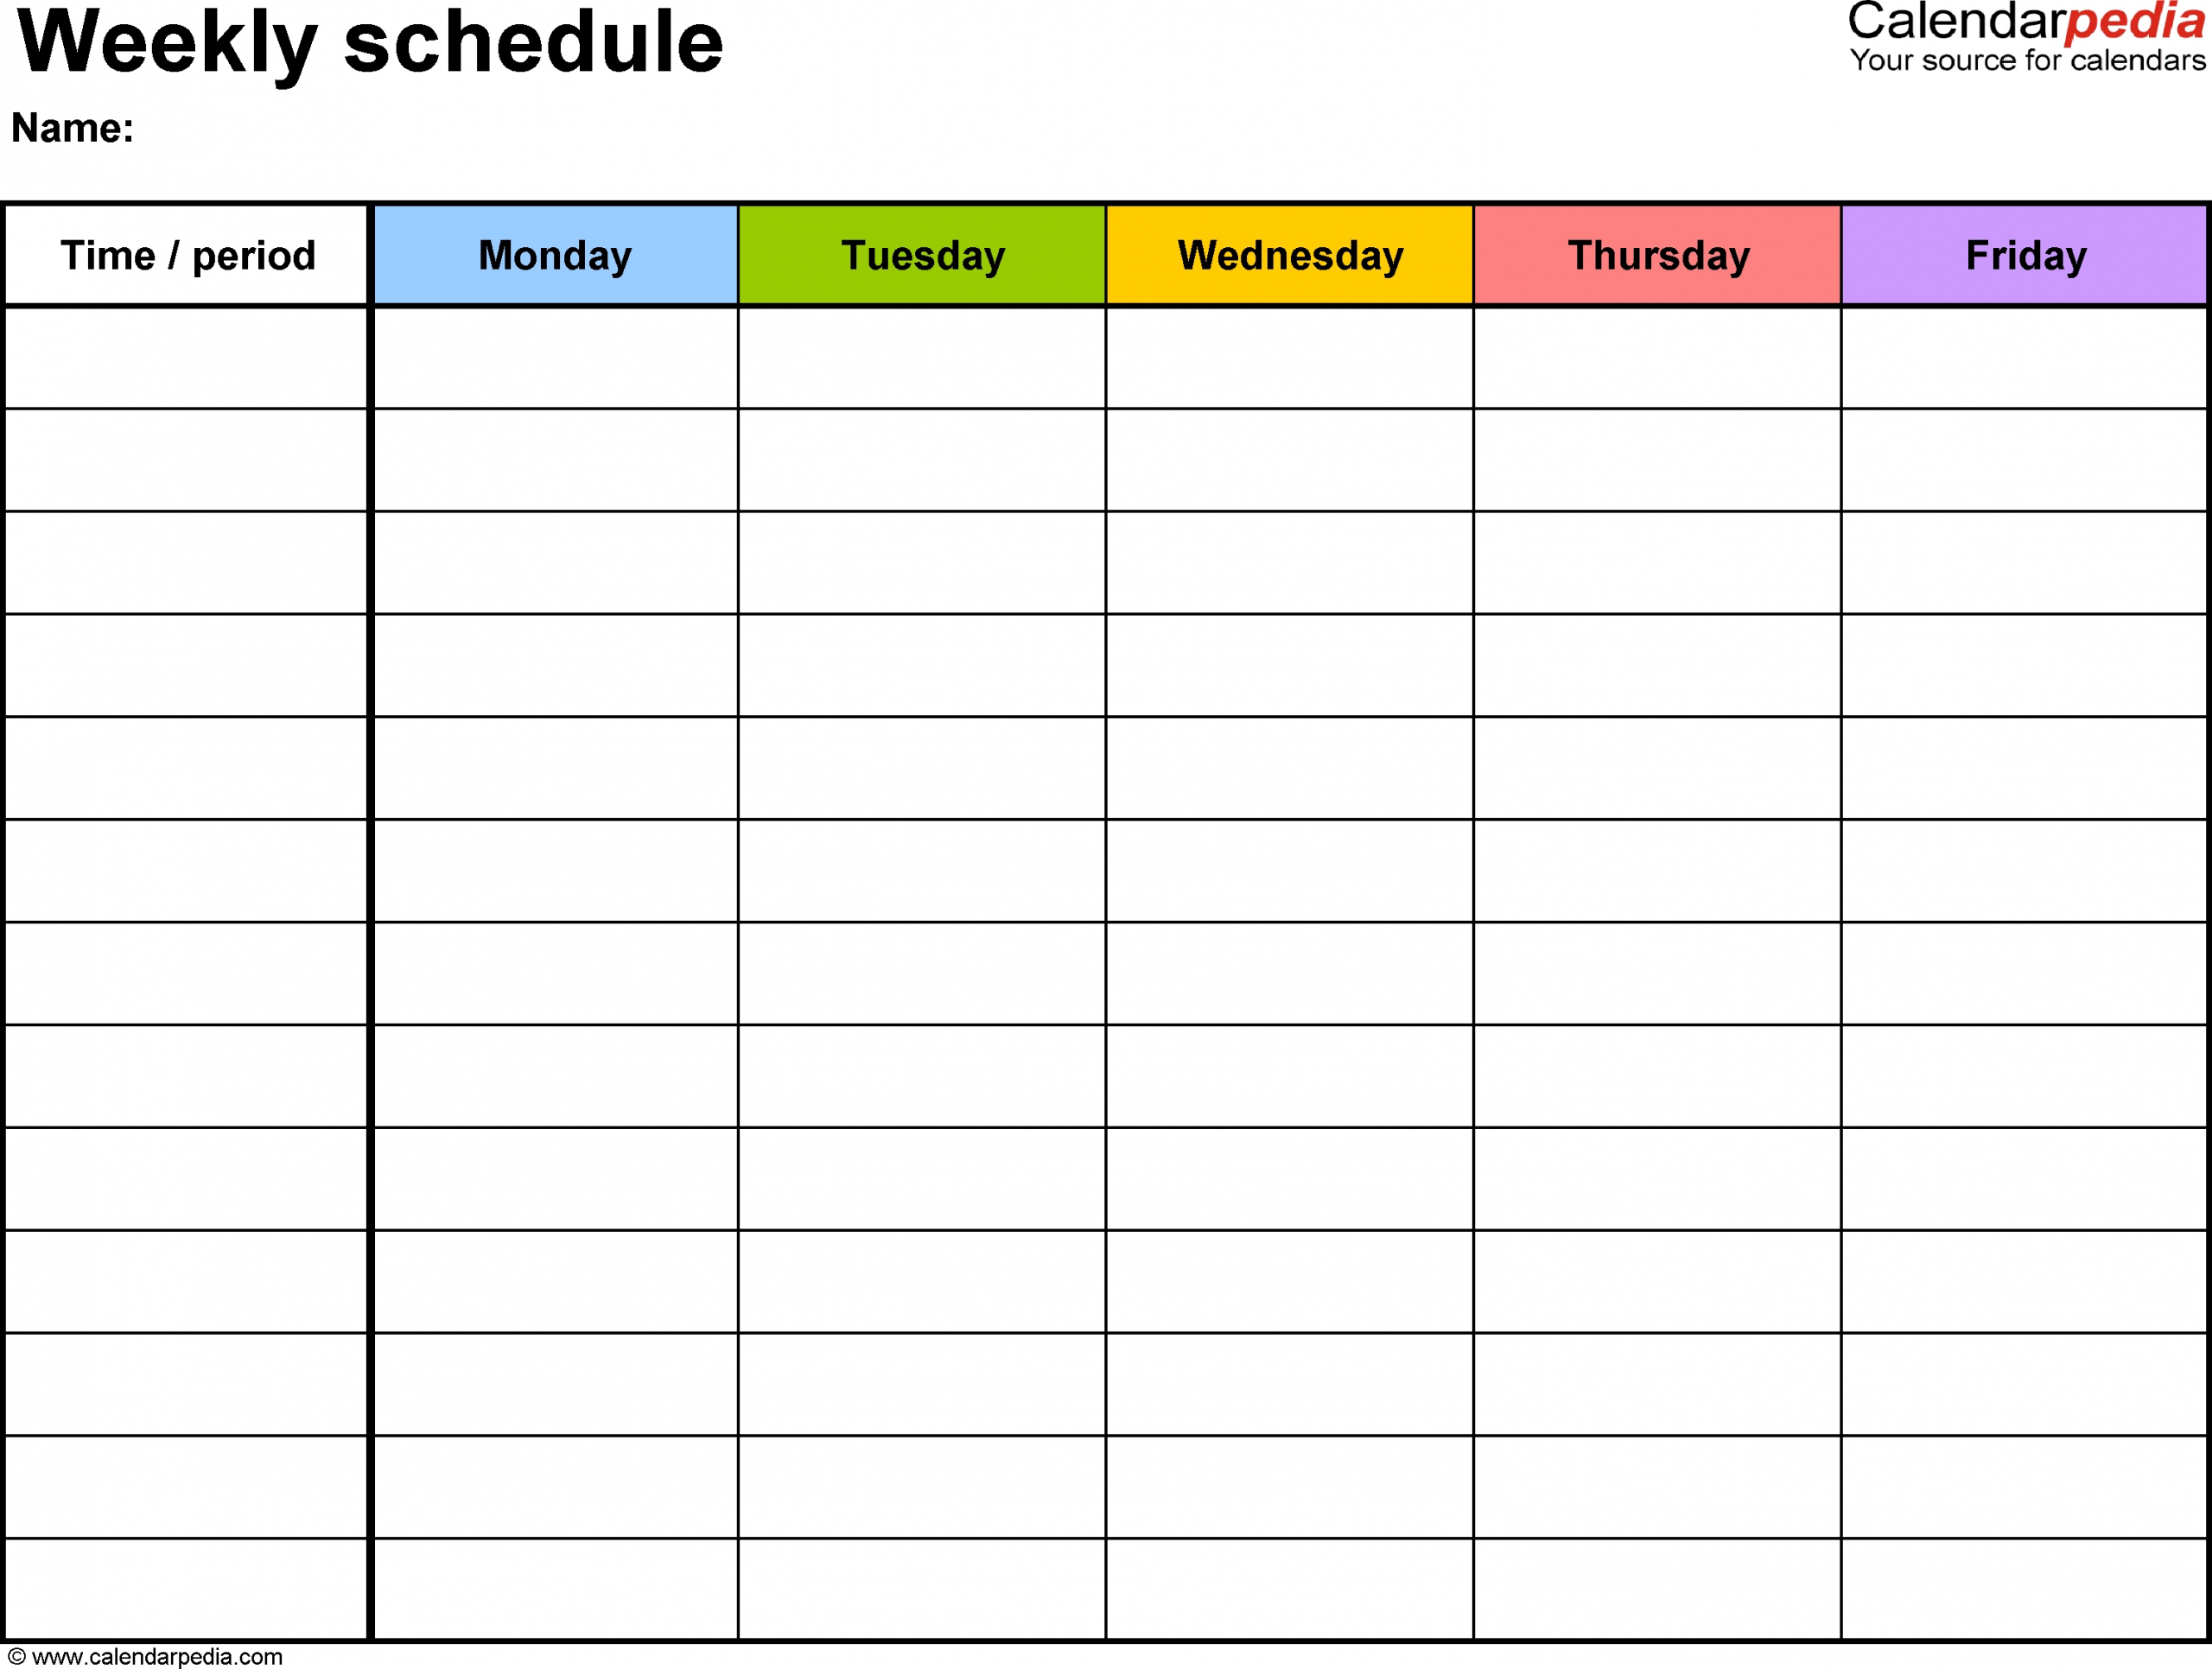 Weekly Calendar Template Monday To Friday   Calendar Monday To Friday Calendar Template